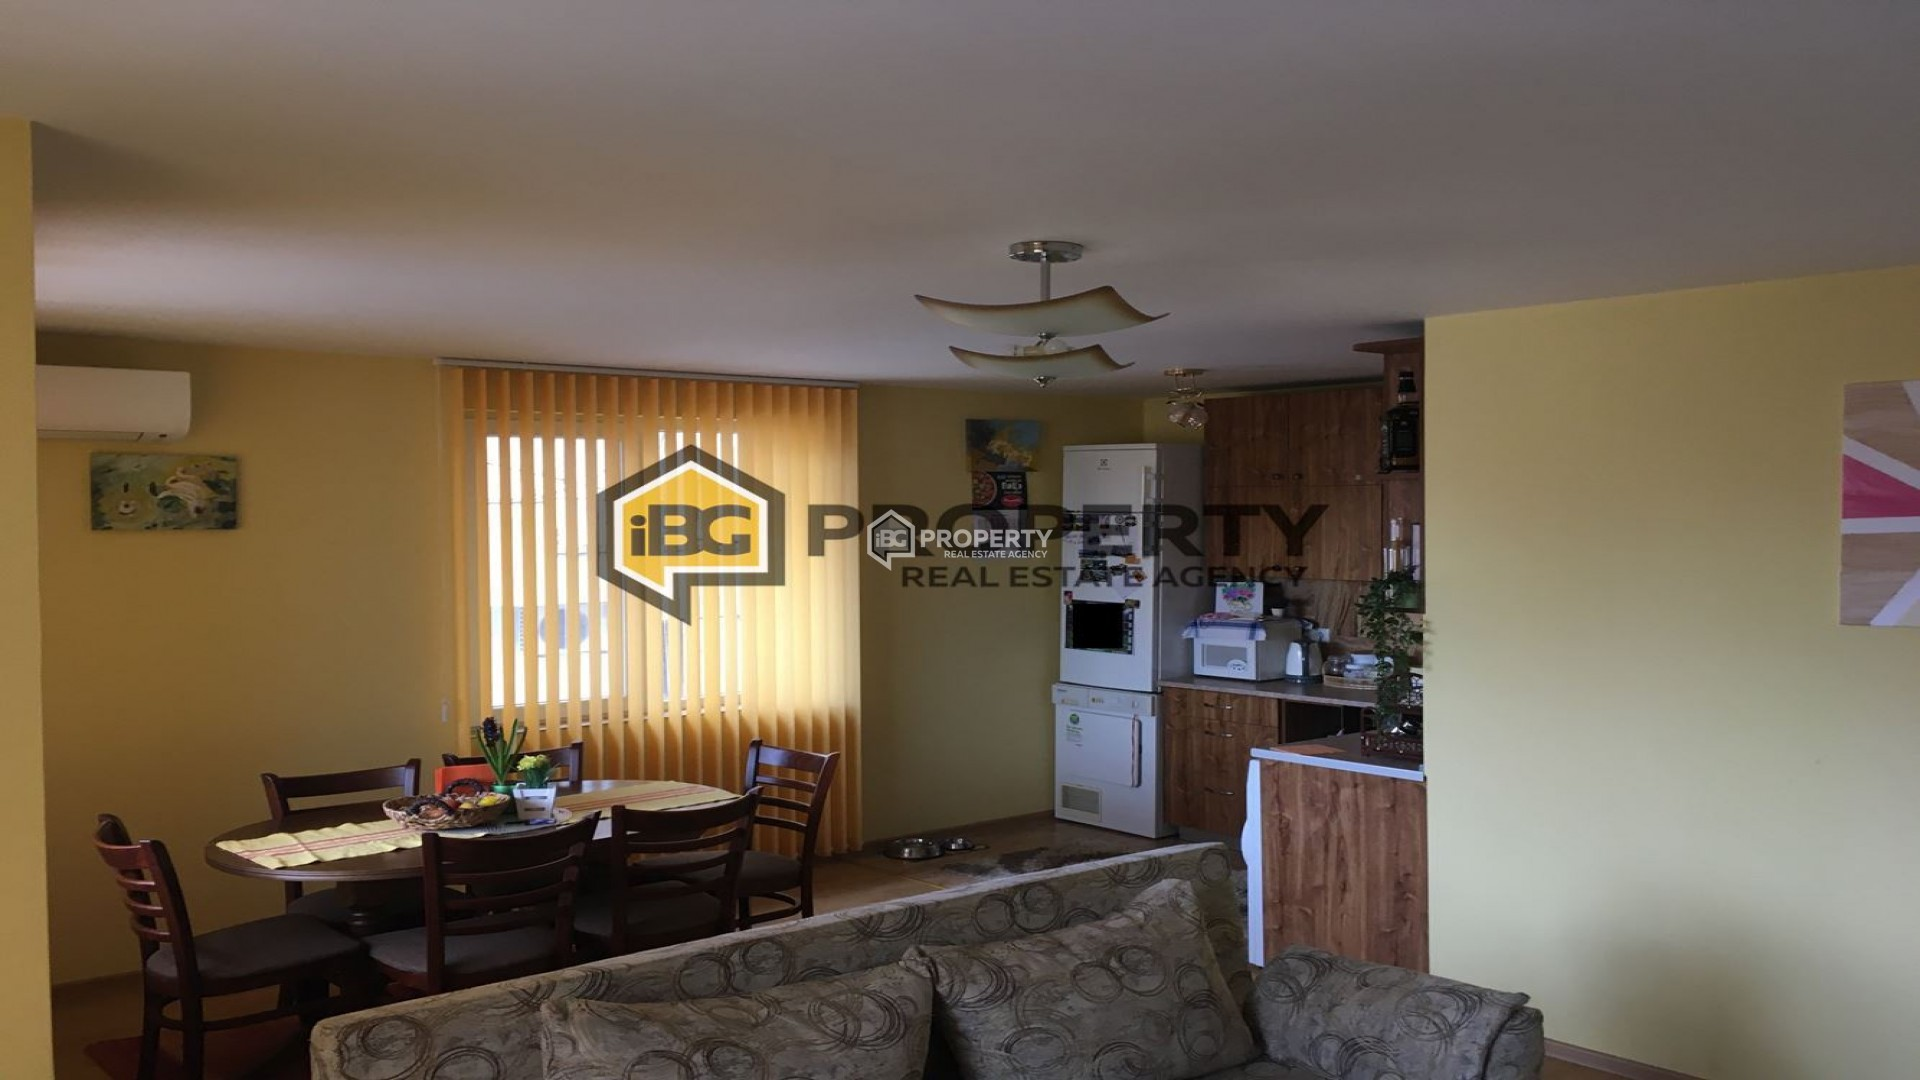 One bedroom furnished apartment in Vinitca